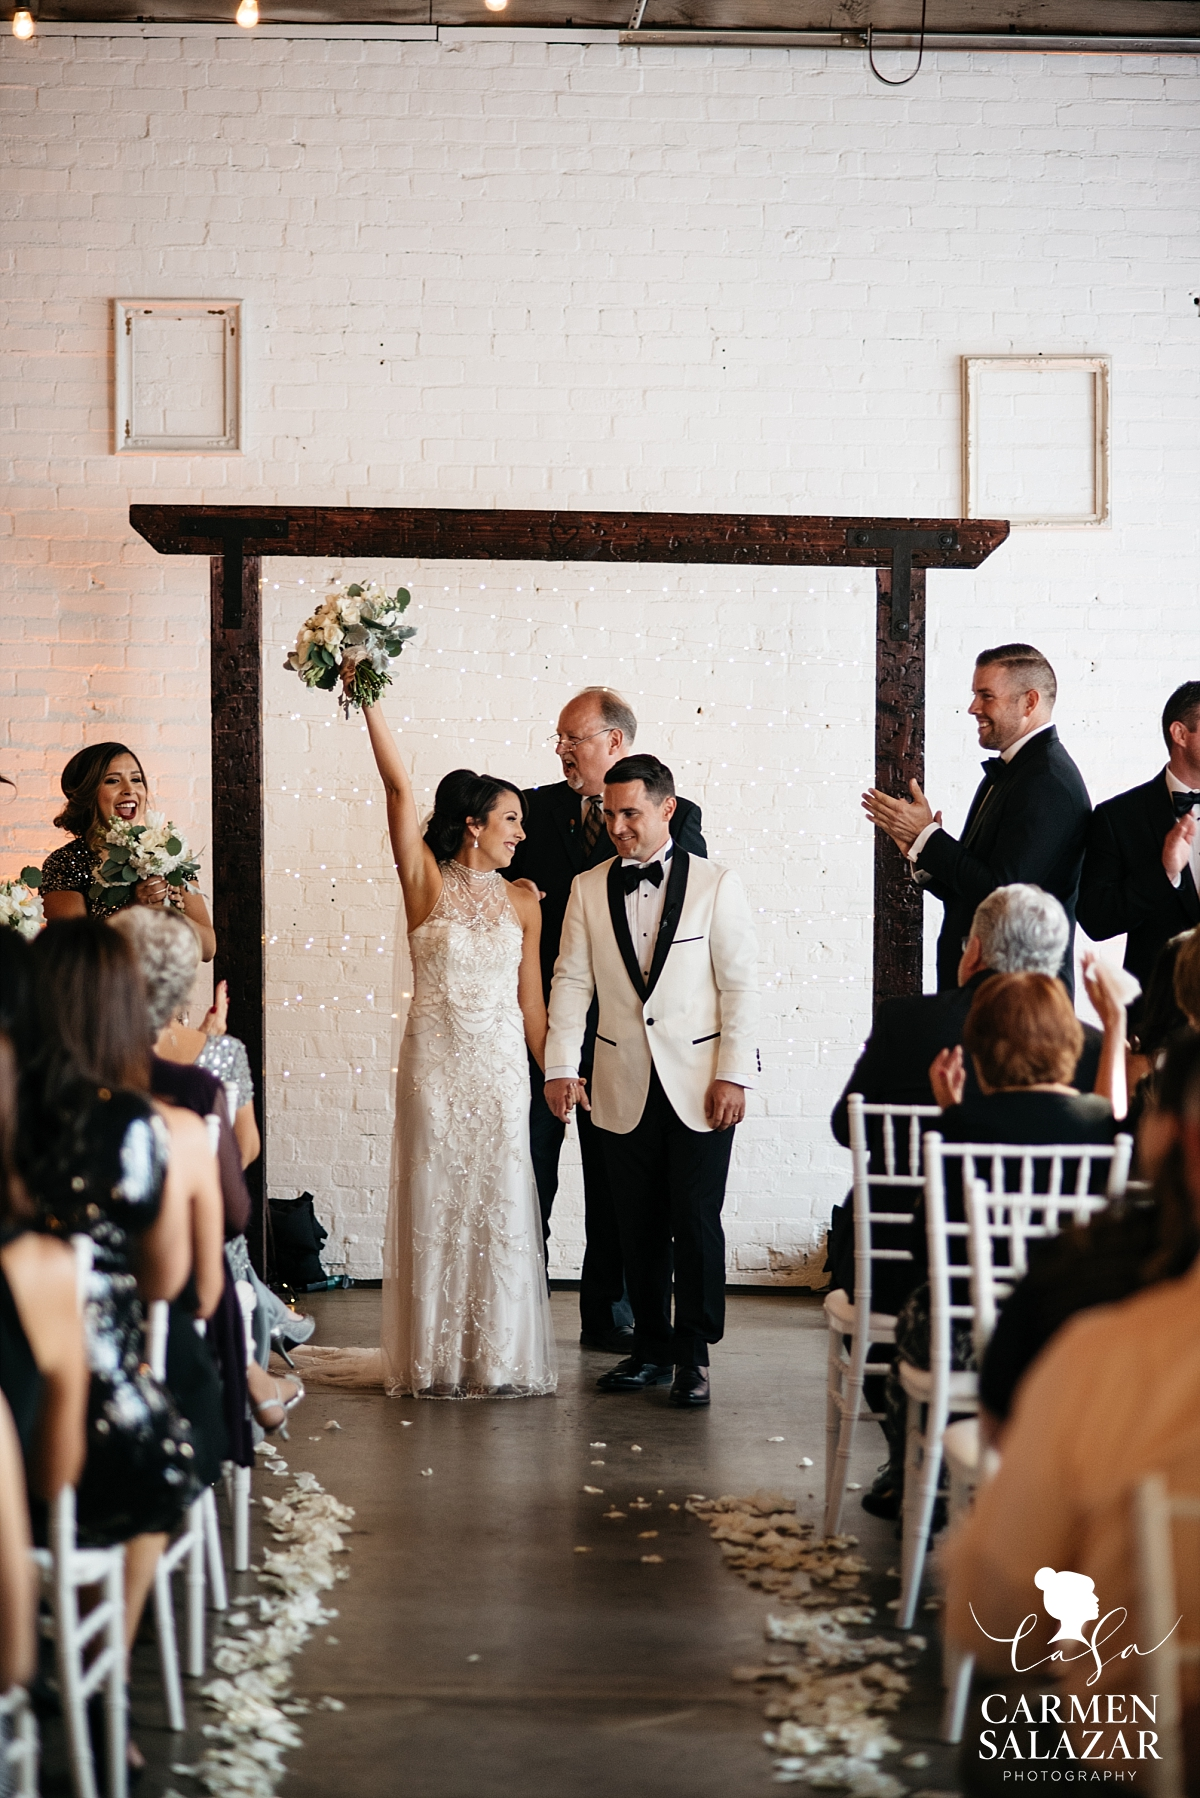 Happy newlyweds celebrating at The Find - Carmen Salazar